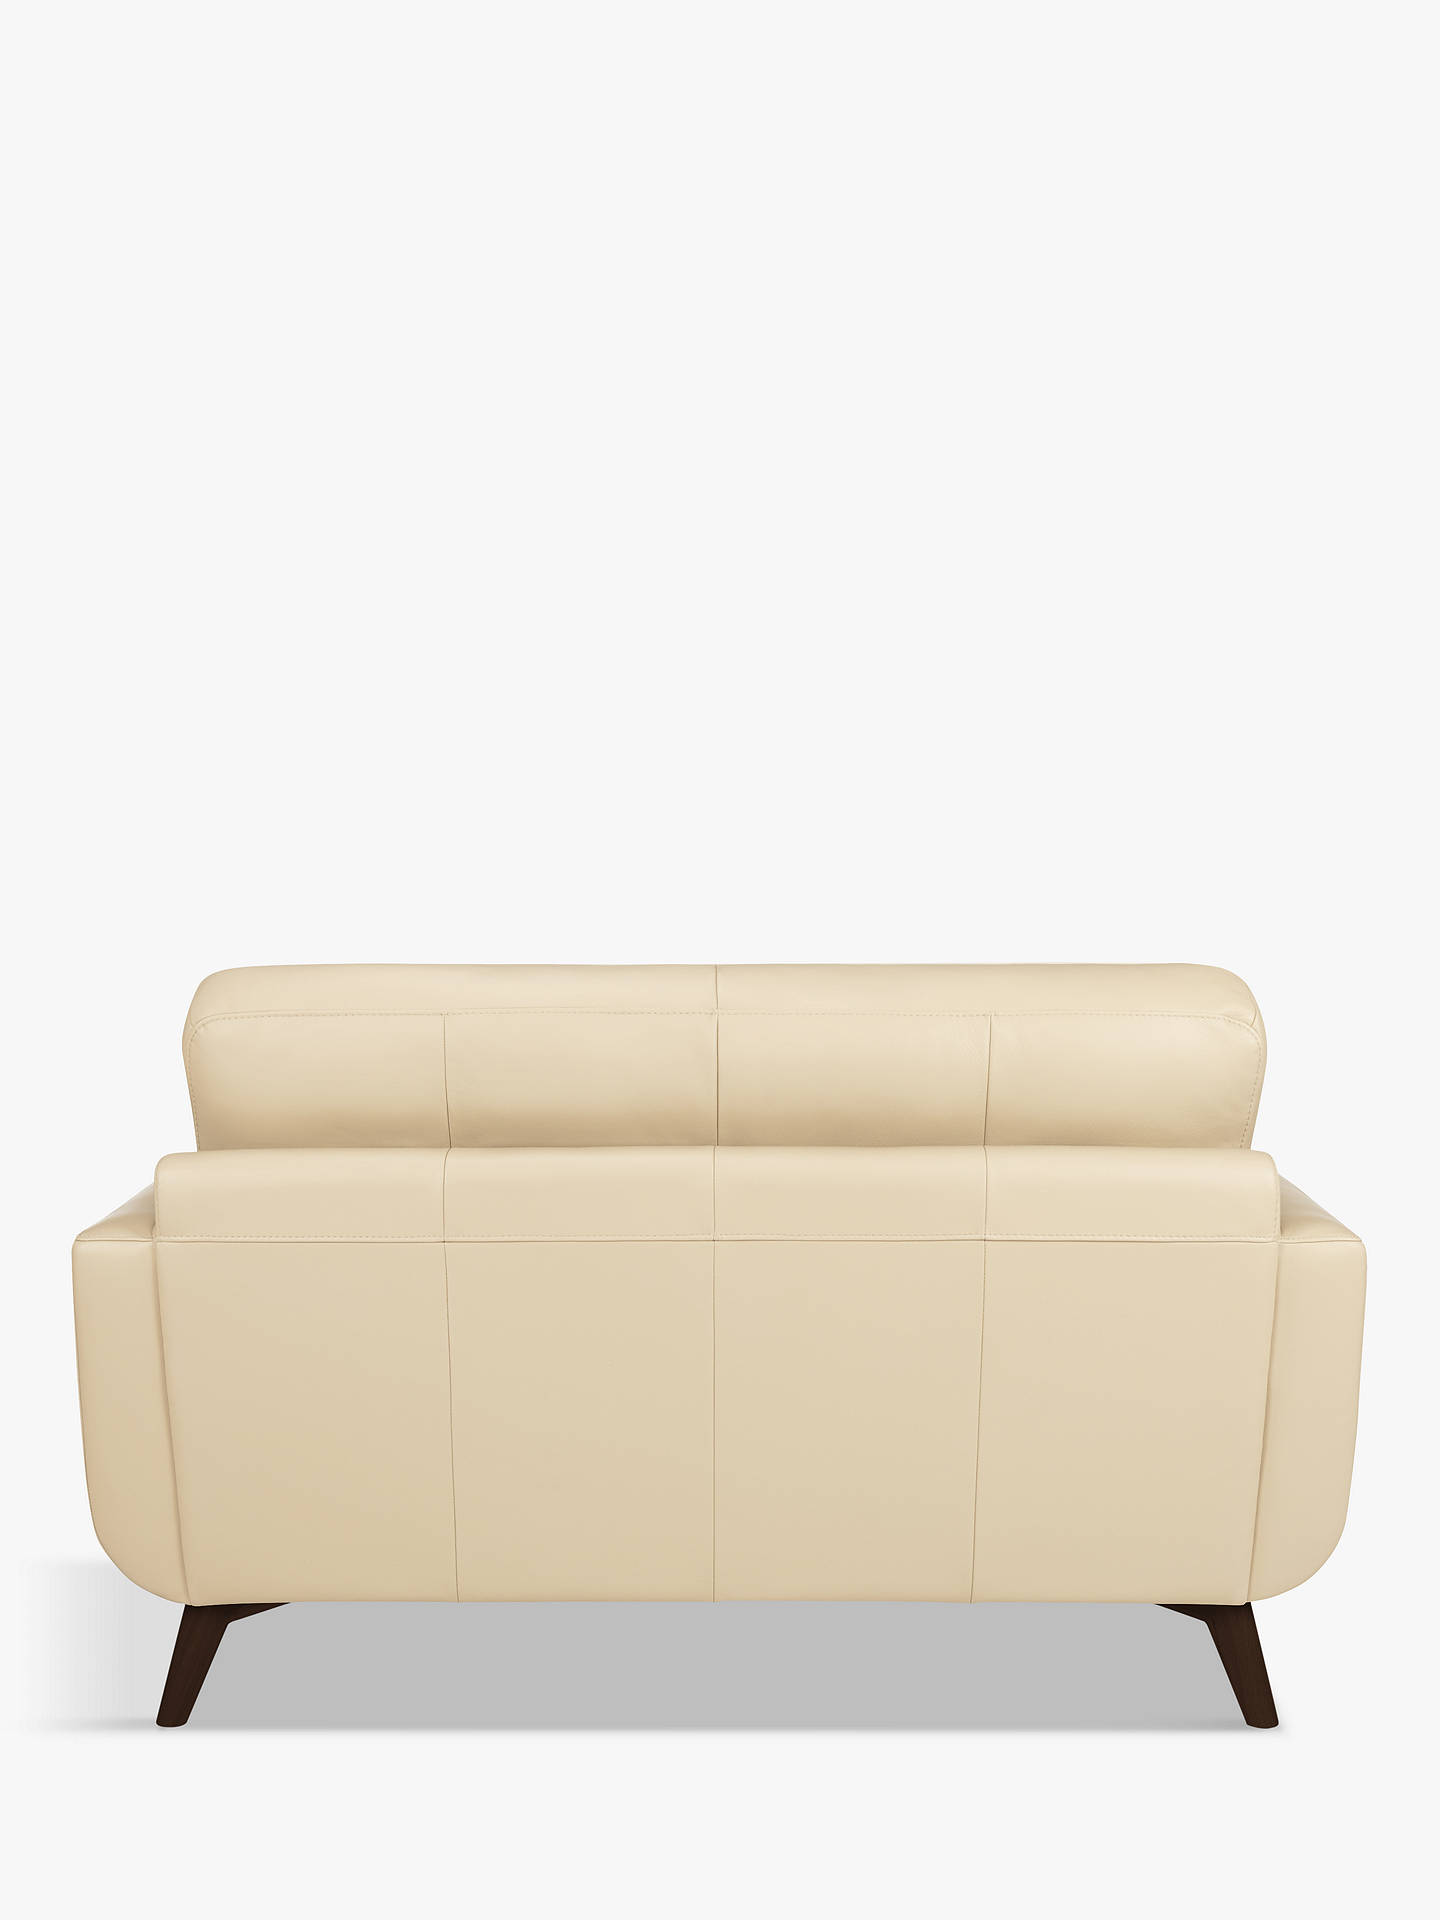 Buy John Lewis & Partners Barbican Small 2 Seater Leather Sofa, Dark Leg, Contempo Ivory Online at johnlewis.com